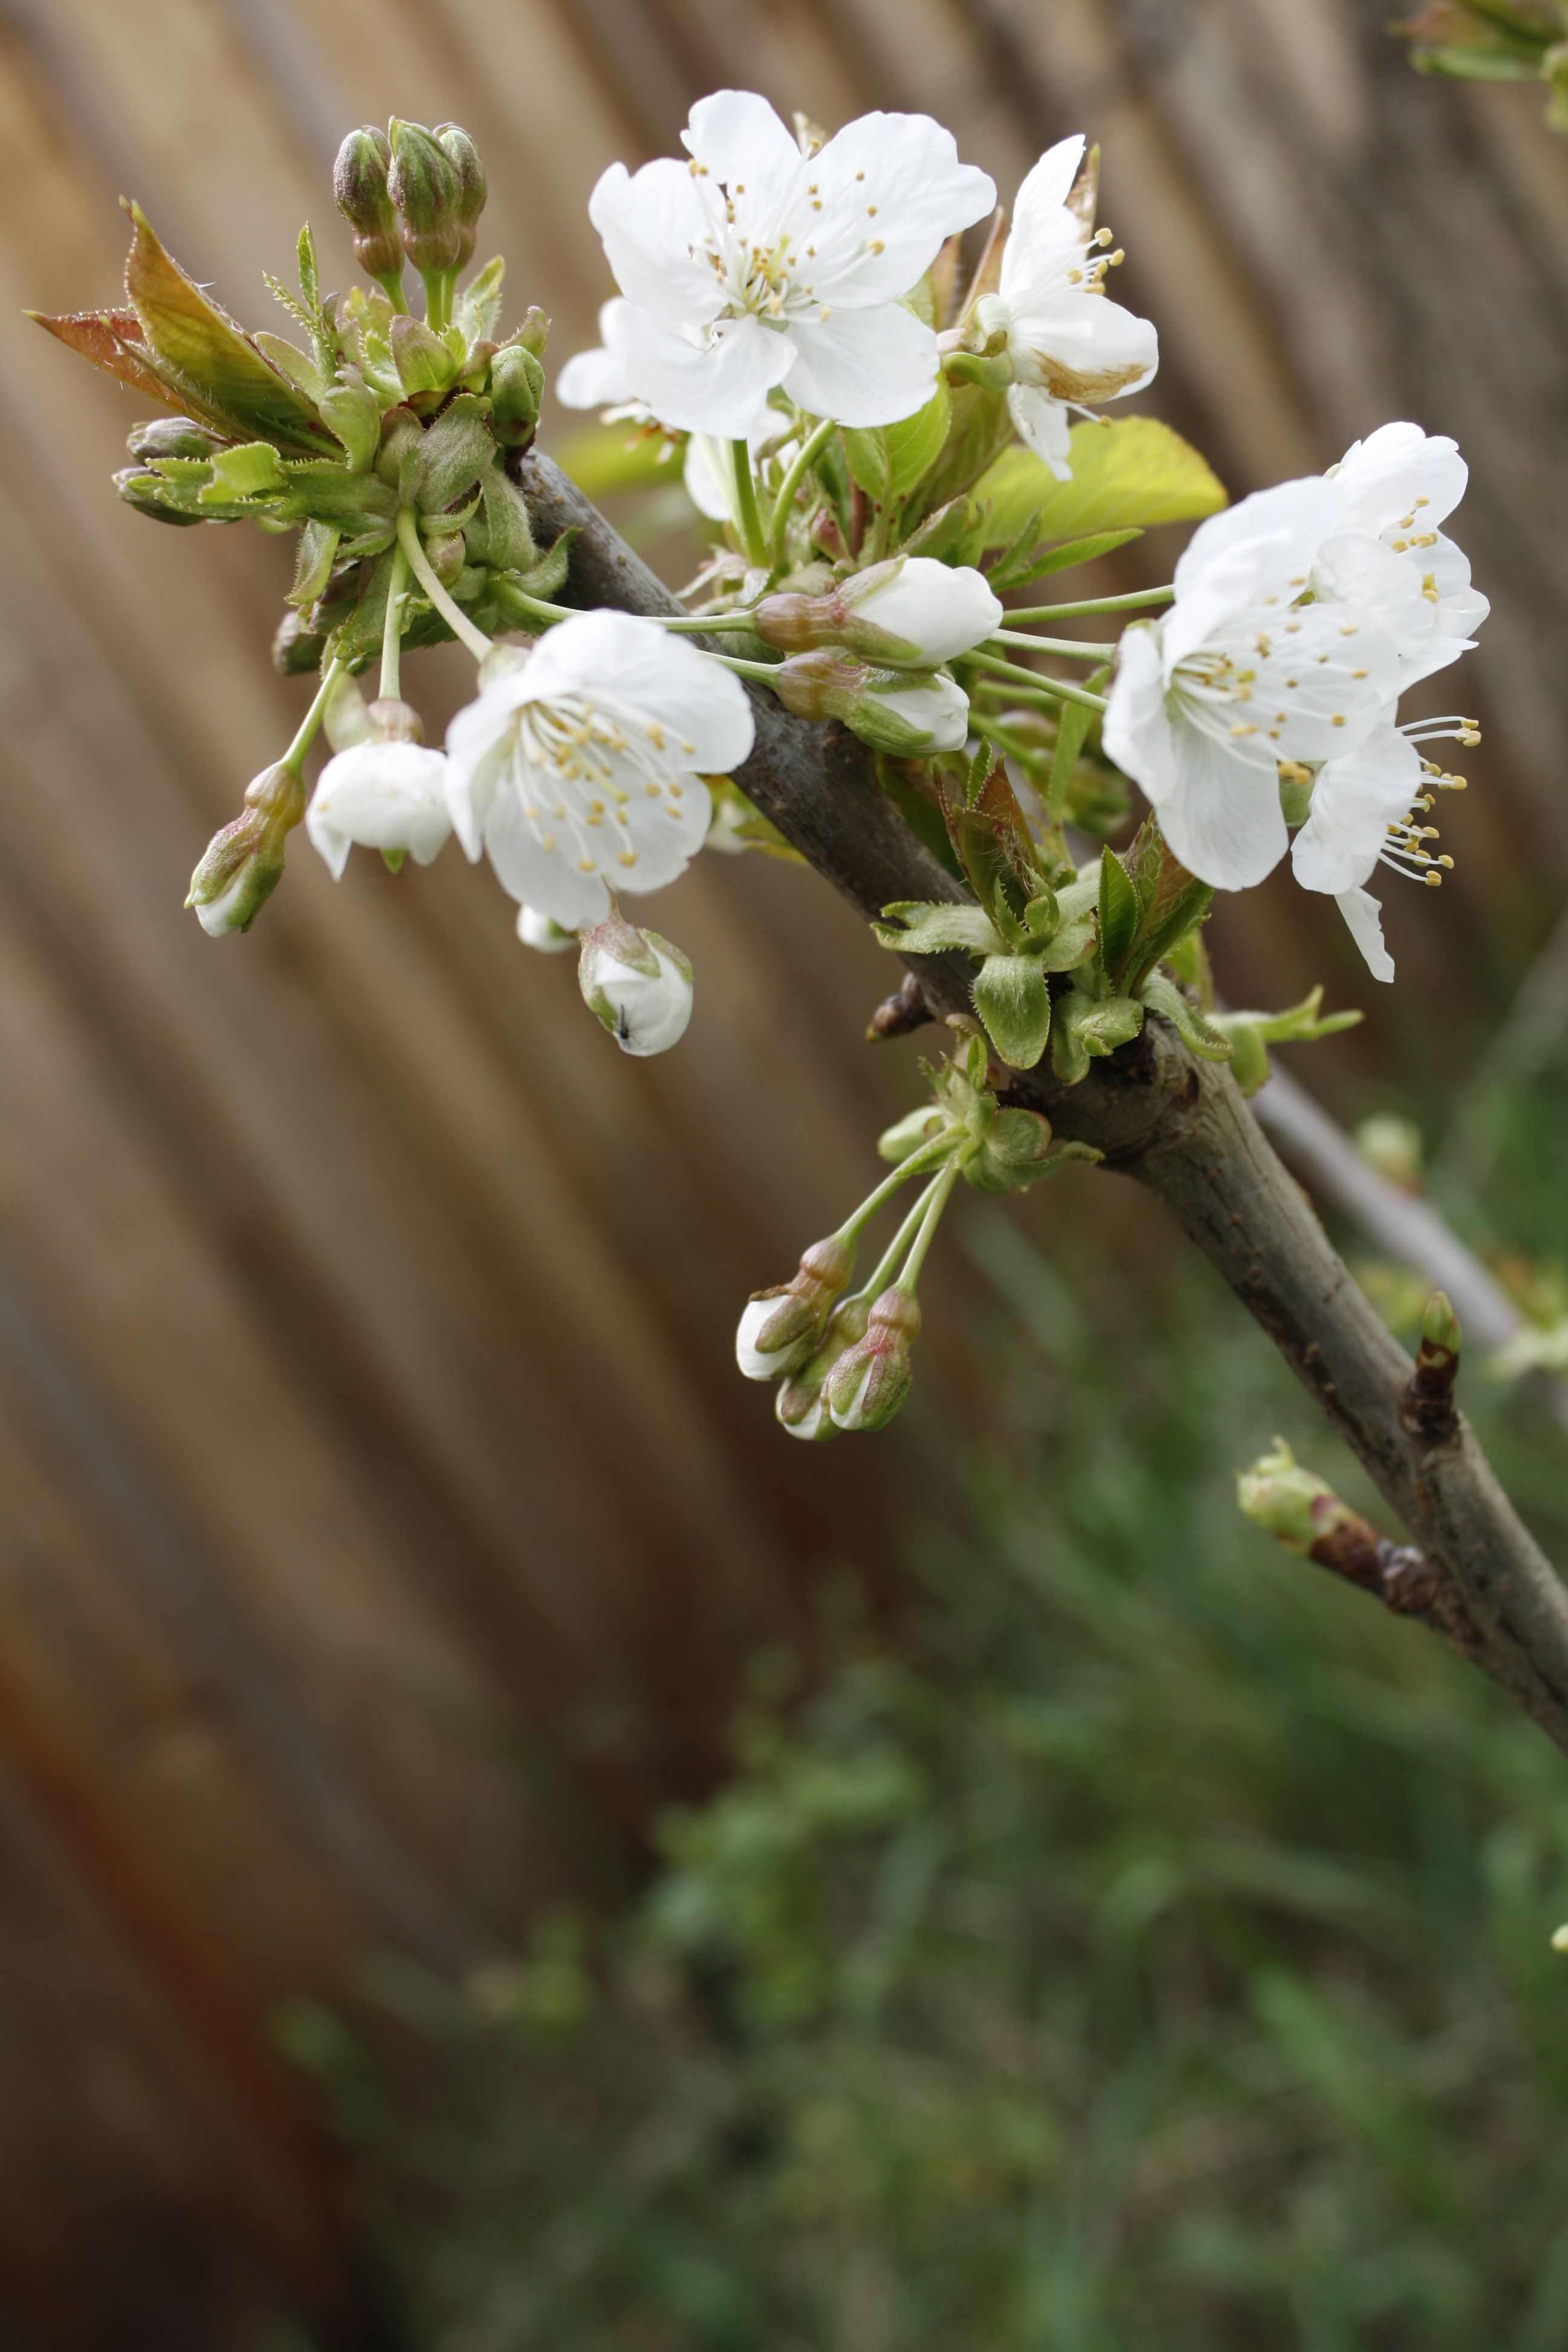 New Little Bing Cherry Tree With It S First Blossoms Cherry Tree Bing Cherries Tree